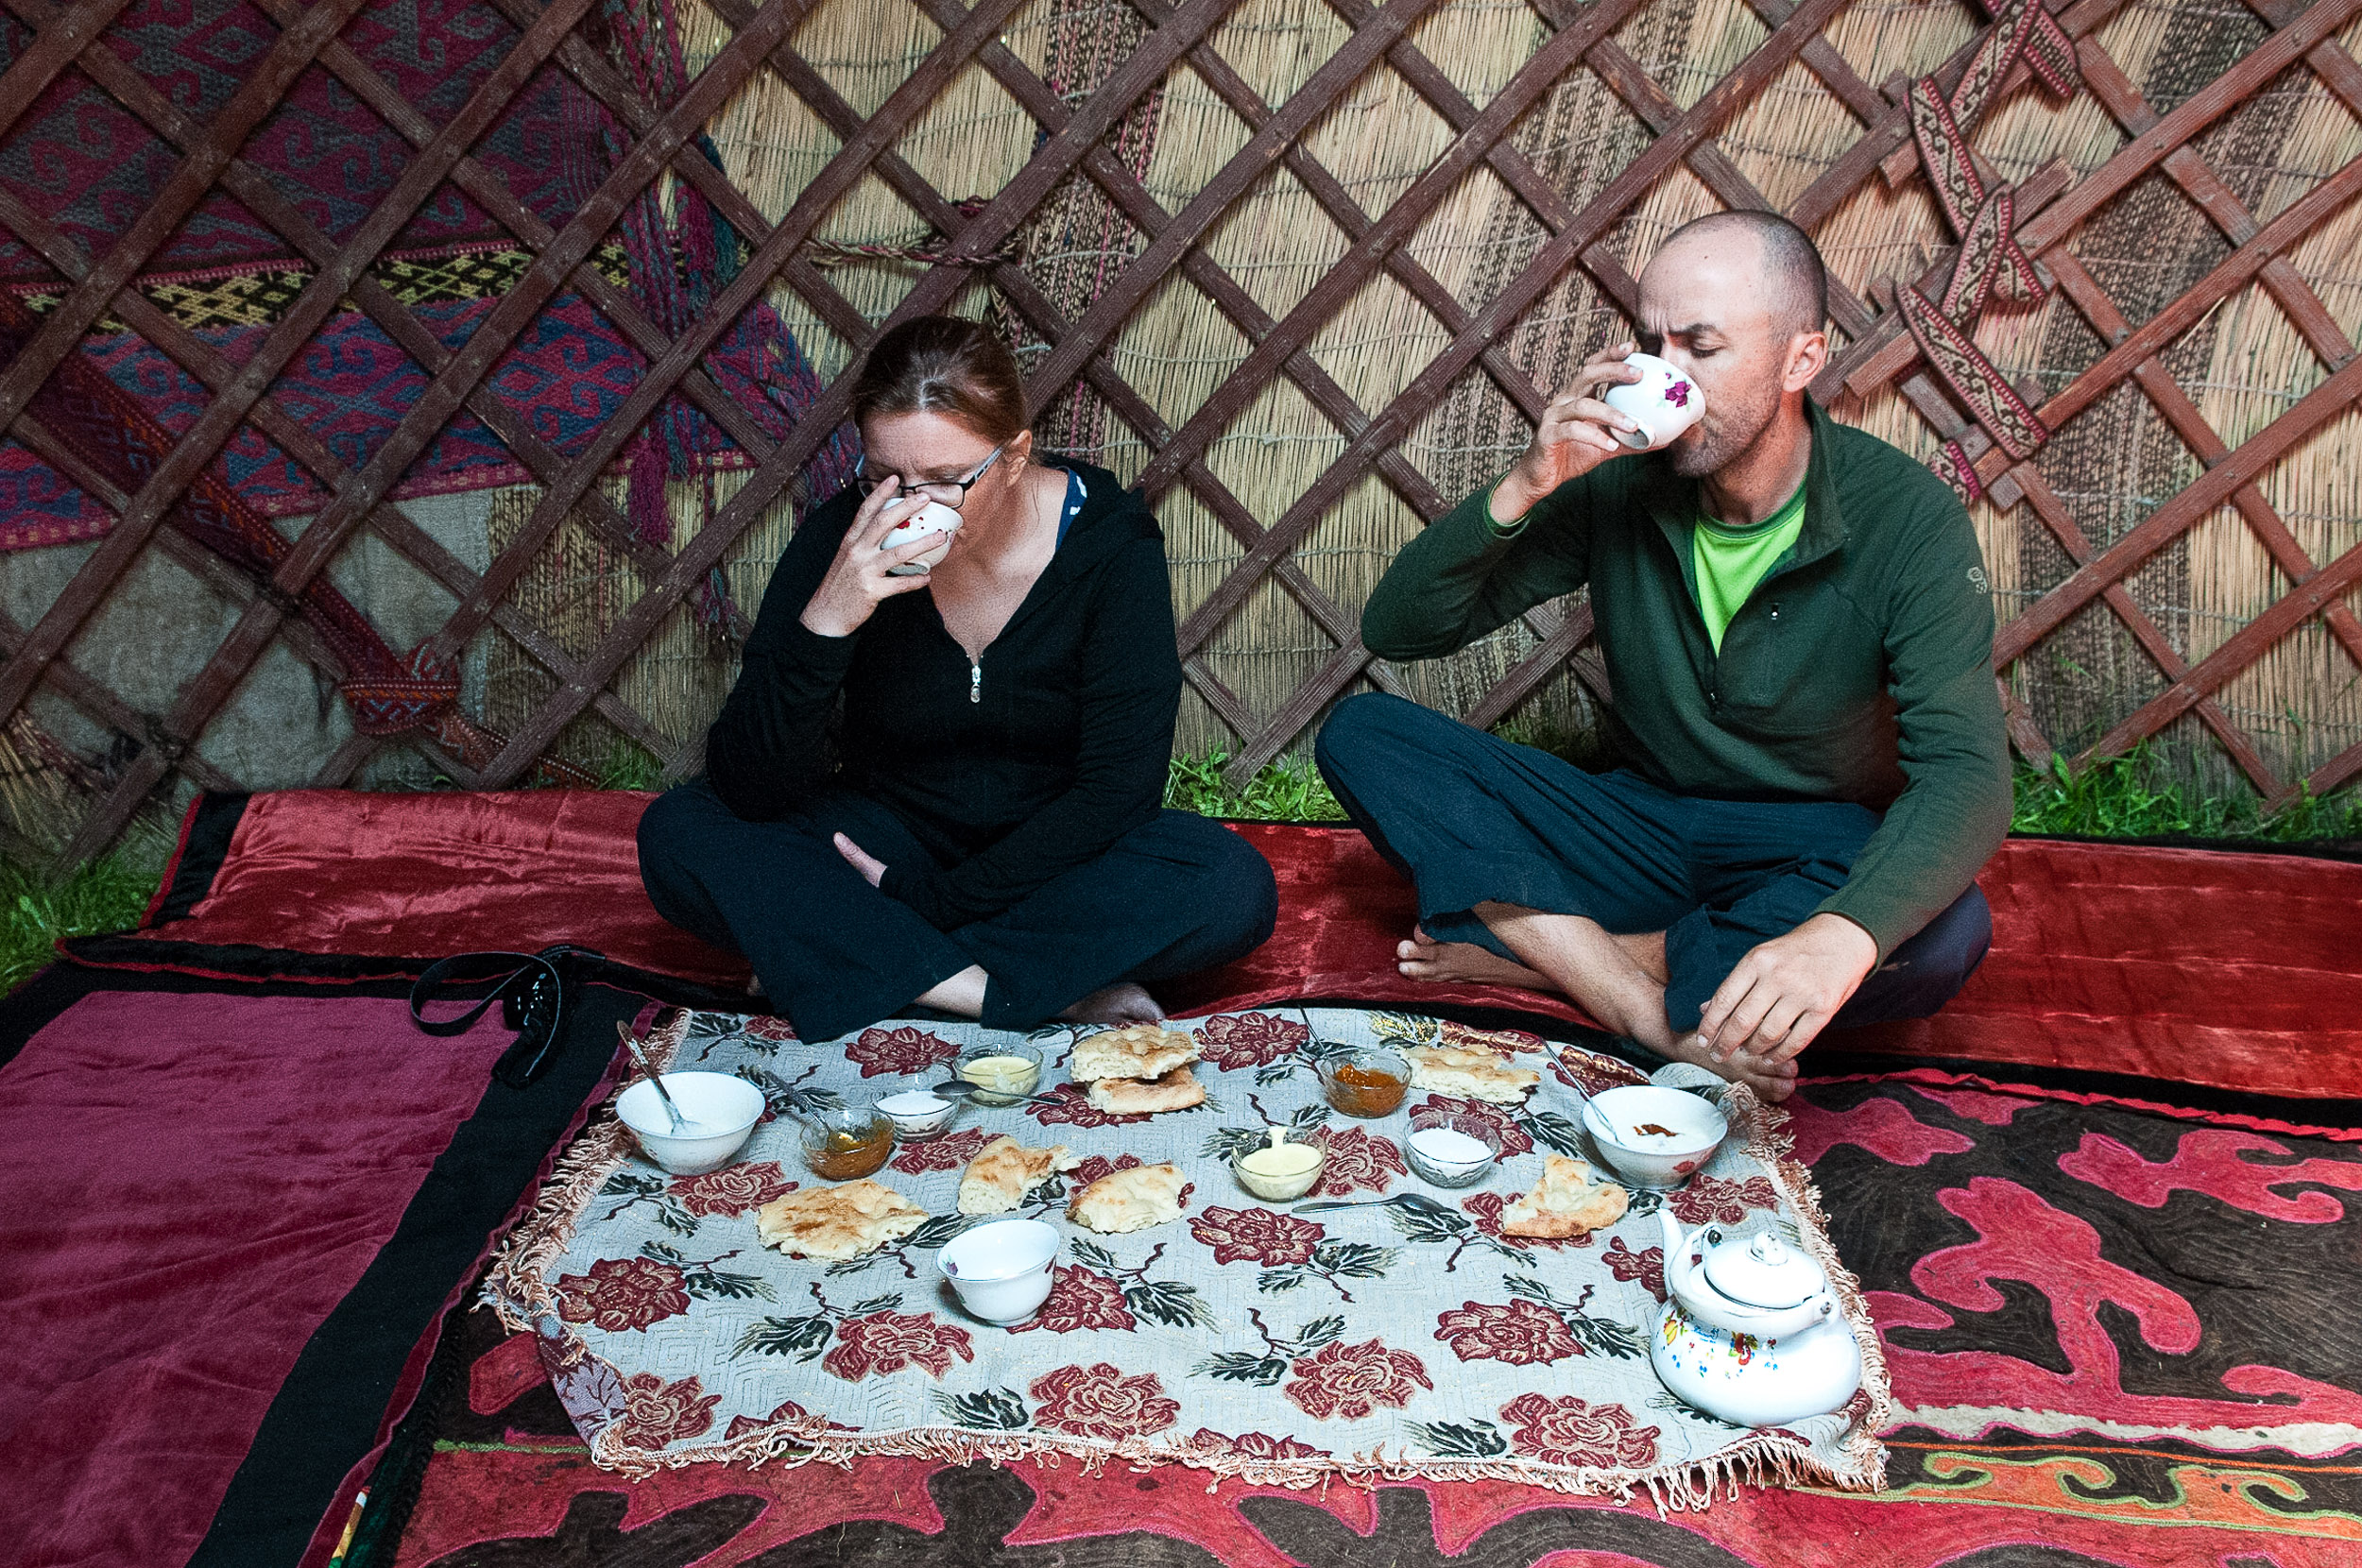 Jane and Thomas eating typical Kyrgyzstan food inside a yurt, Kyrgyzstan.